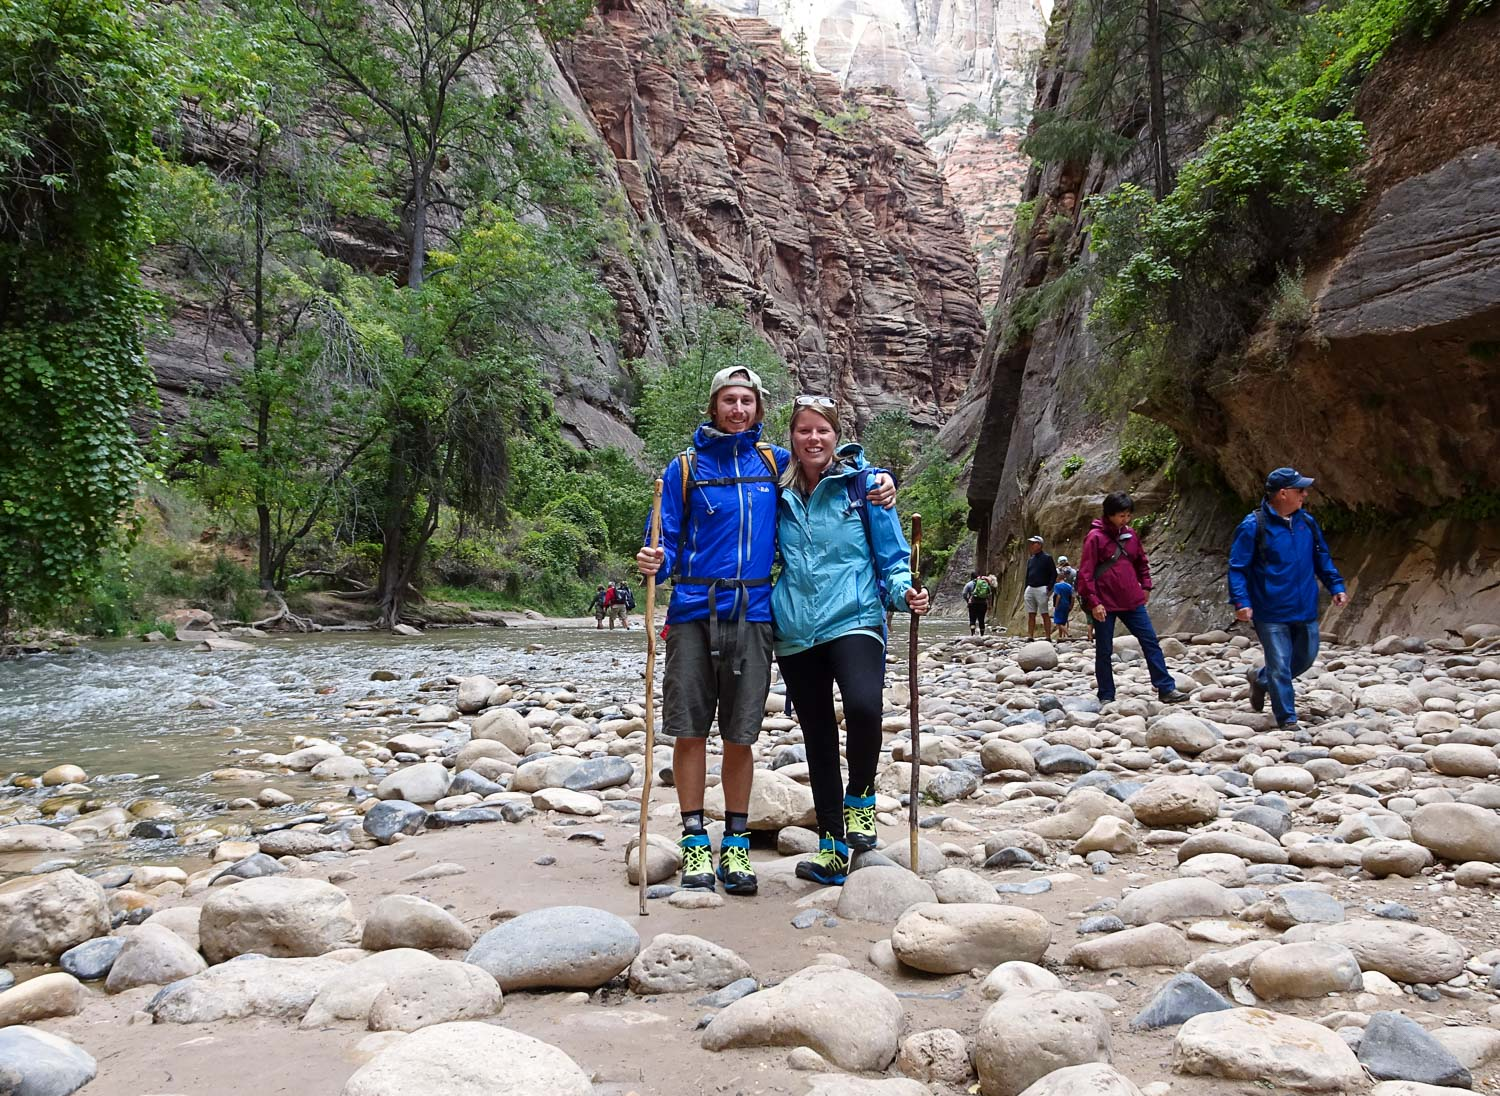 Our stylish water shoes and walking sticks